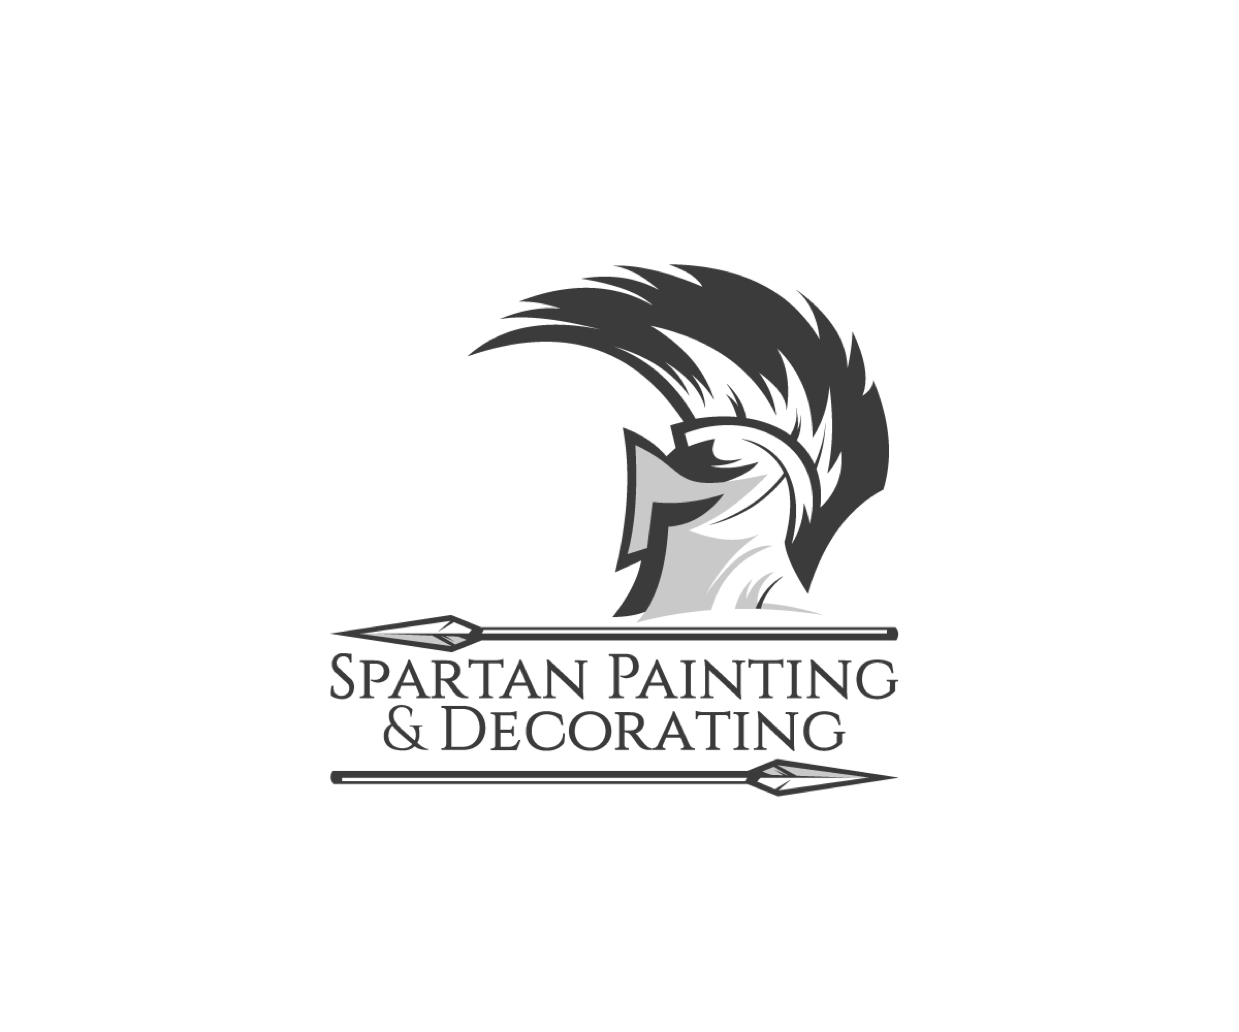 Spartan Painting & Decorating logo